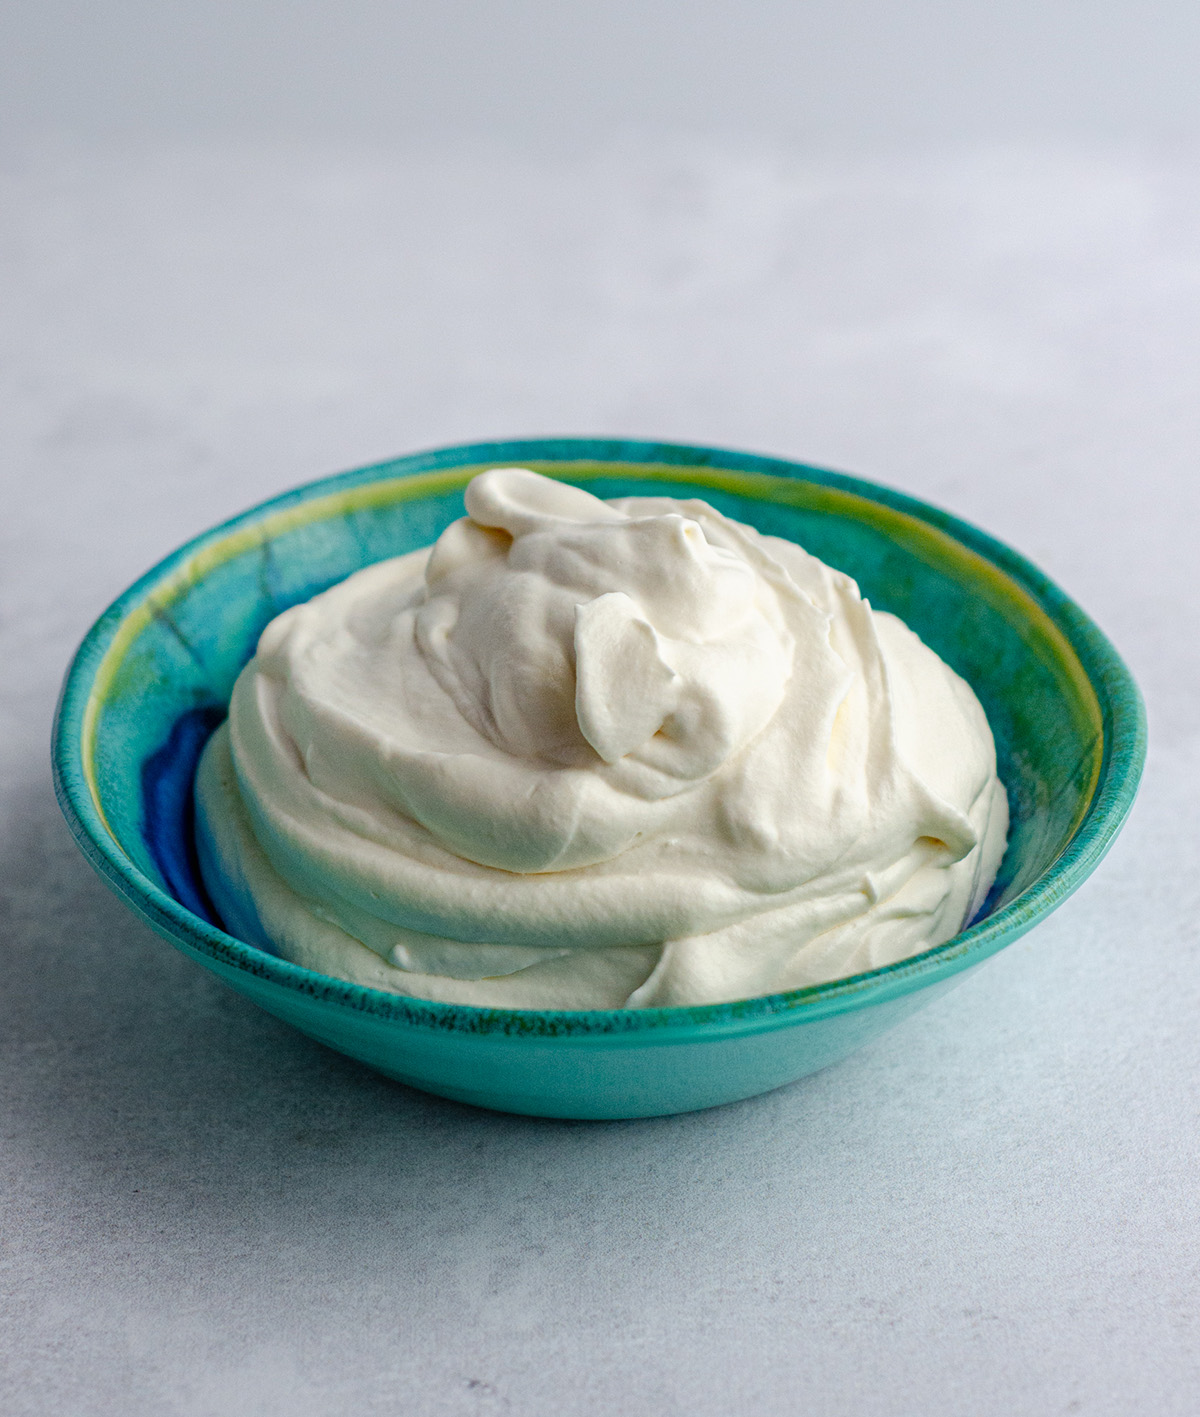 homemade whipped cream in a blue and green bowl